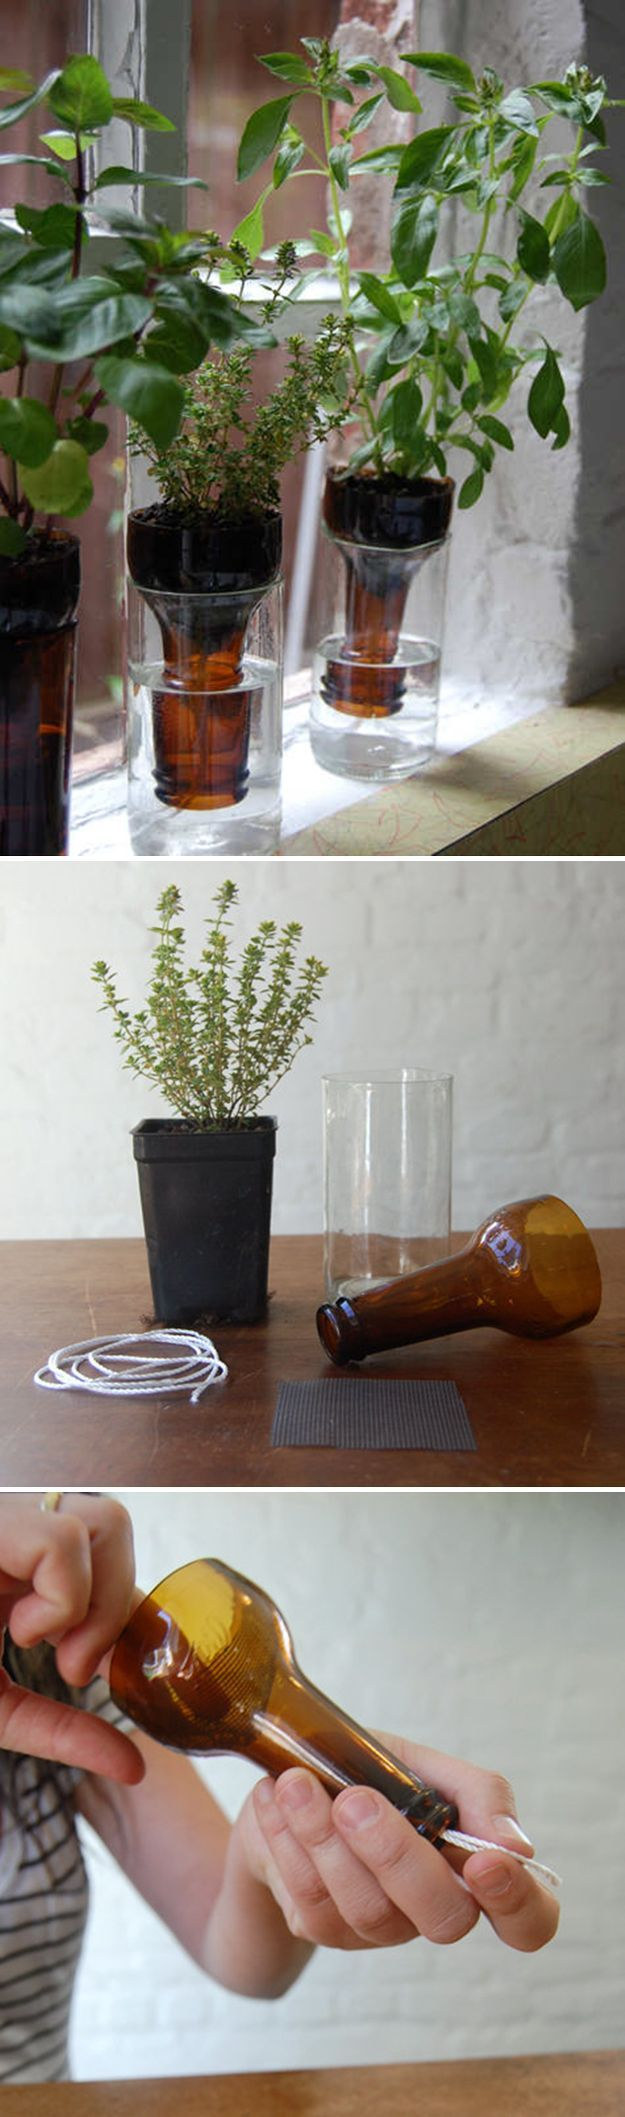 Simple DIY Bottle Garden | Easy DIY Beer Bottle Craft Projects by DIY Ready at www.diyready.com/diy-projects-uses-for-beer-bottles/